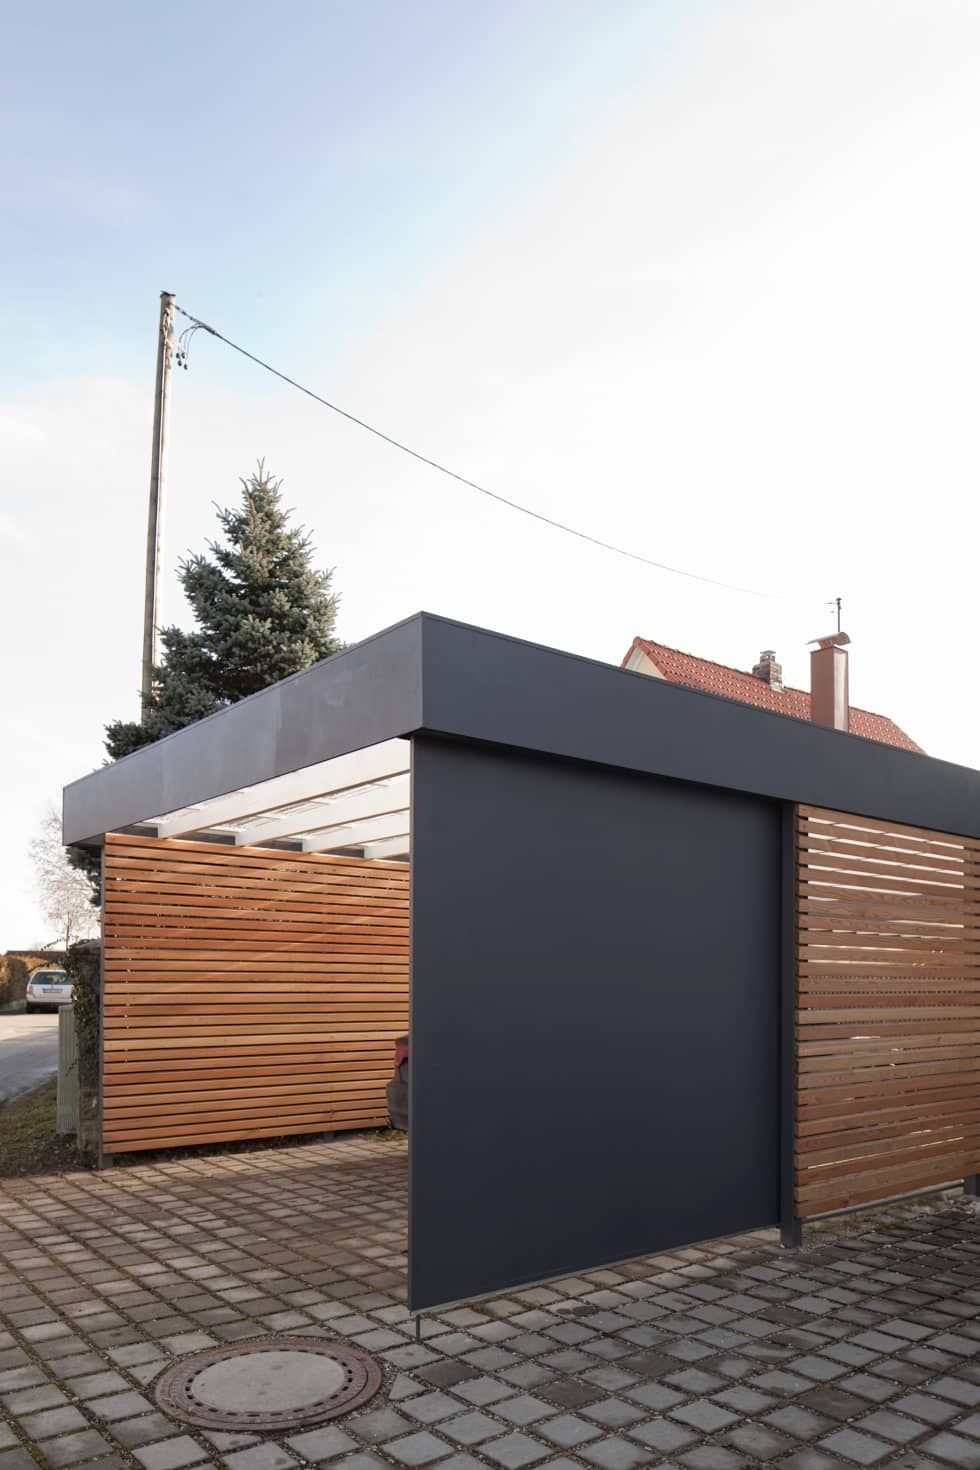 Moderne Garage & Schuppen Bilder: Carport | Armin, Garage decorating ...